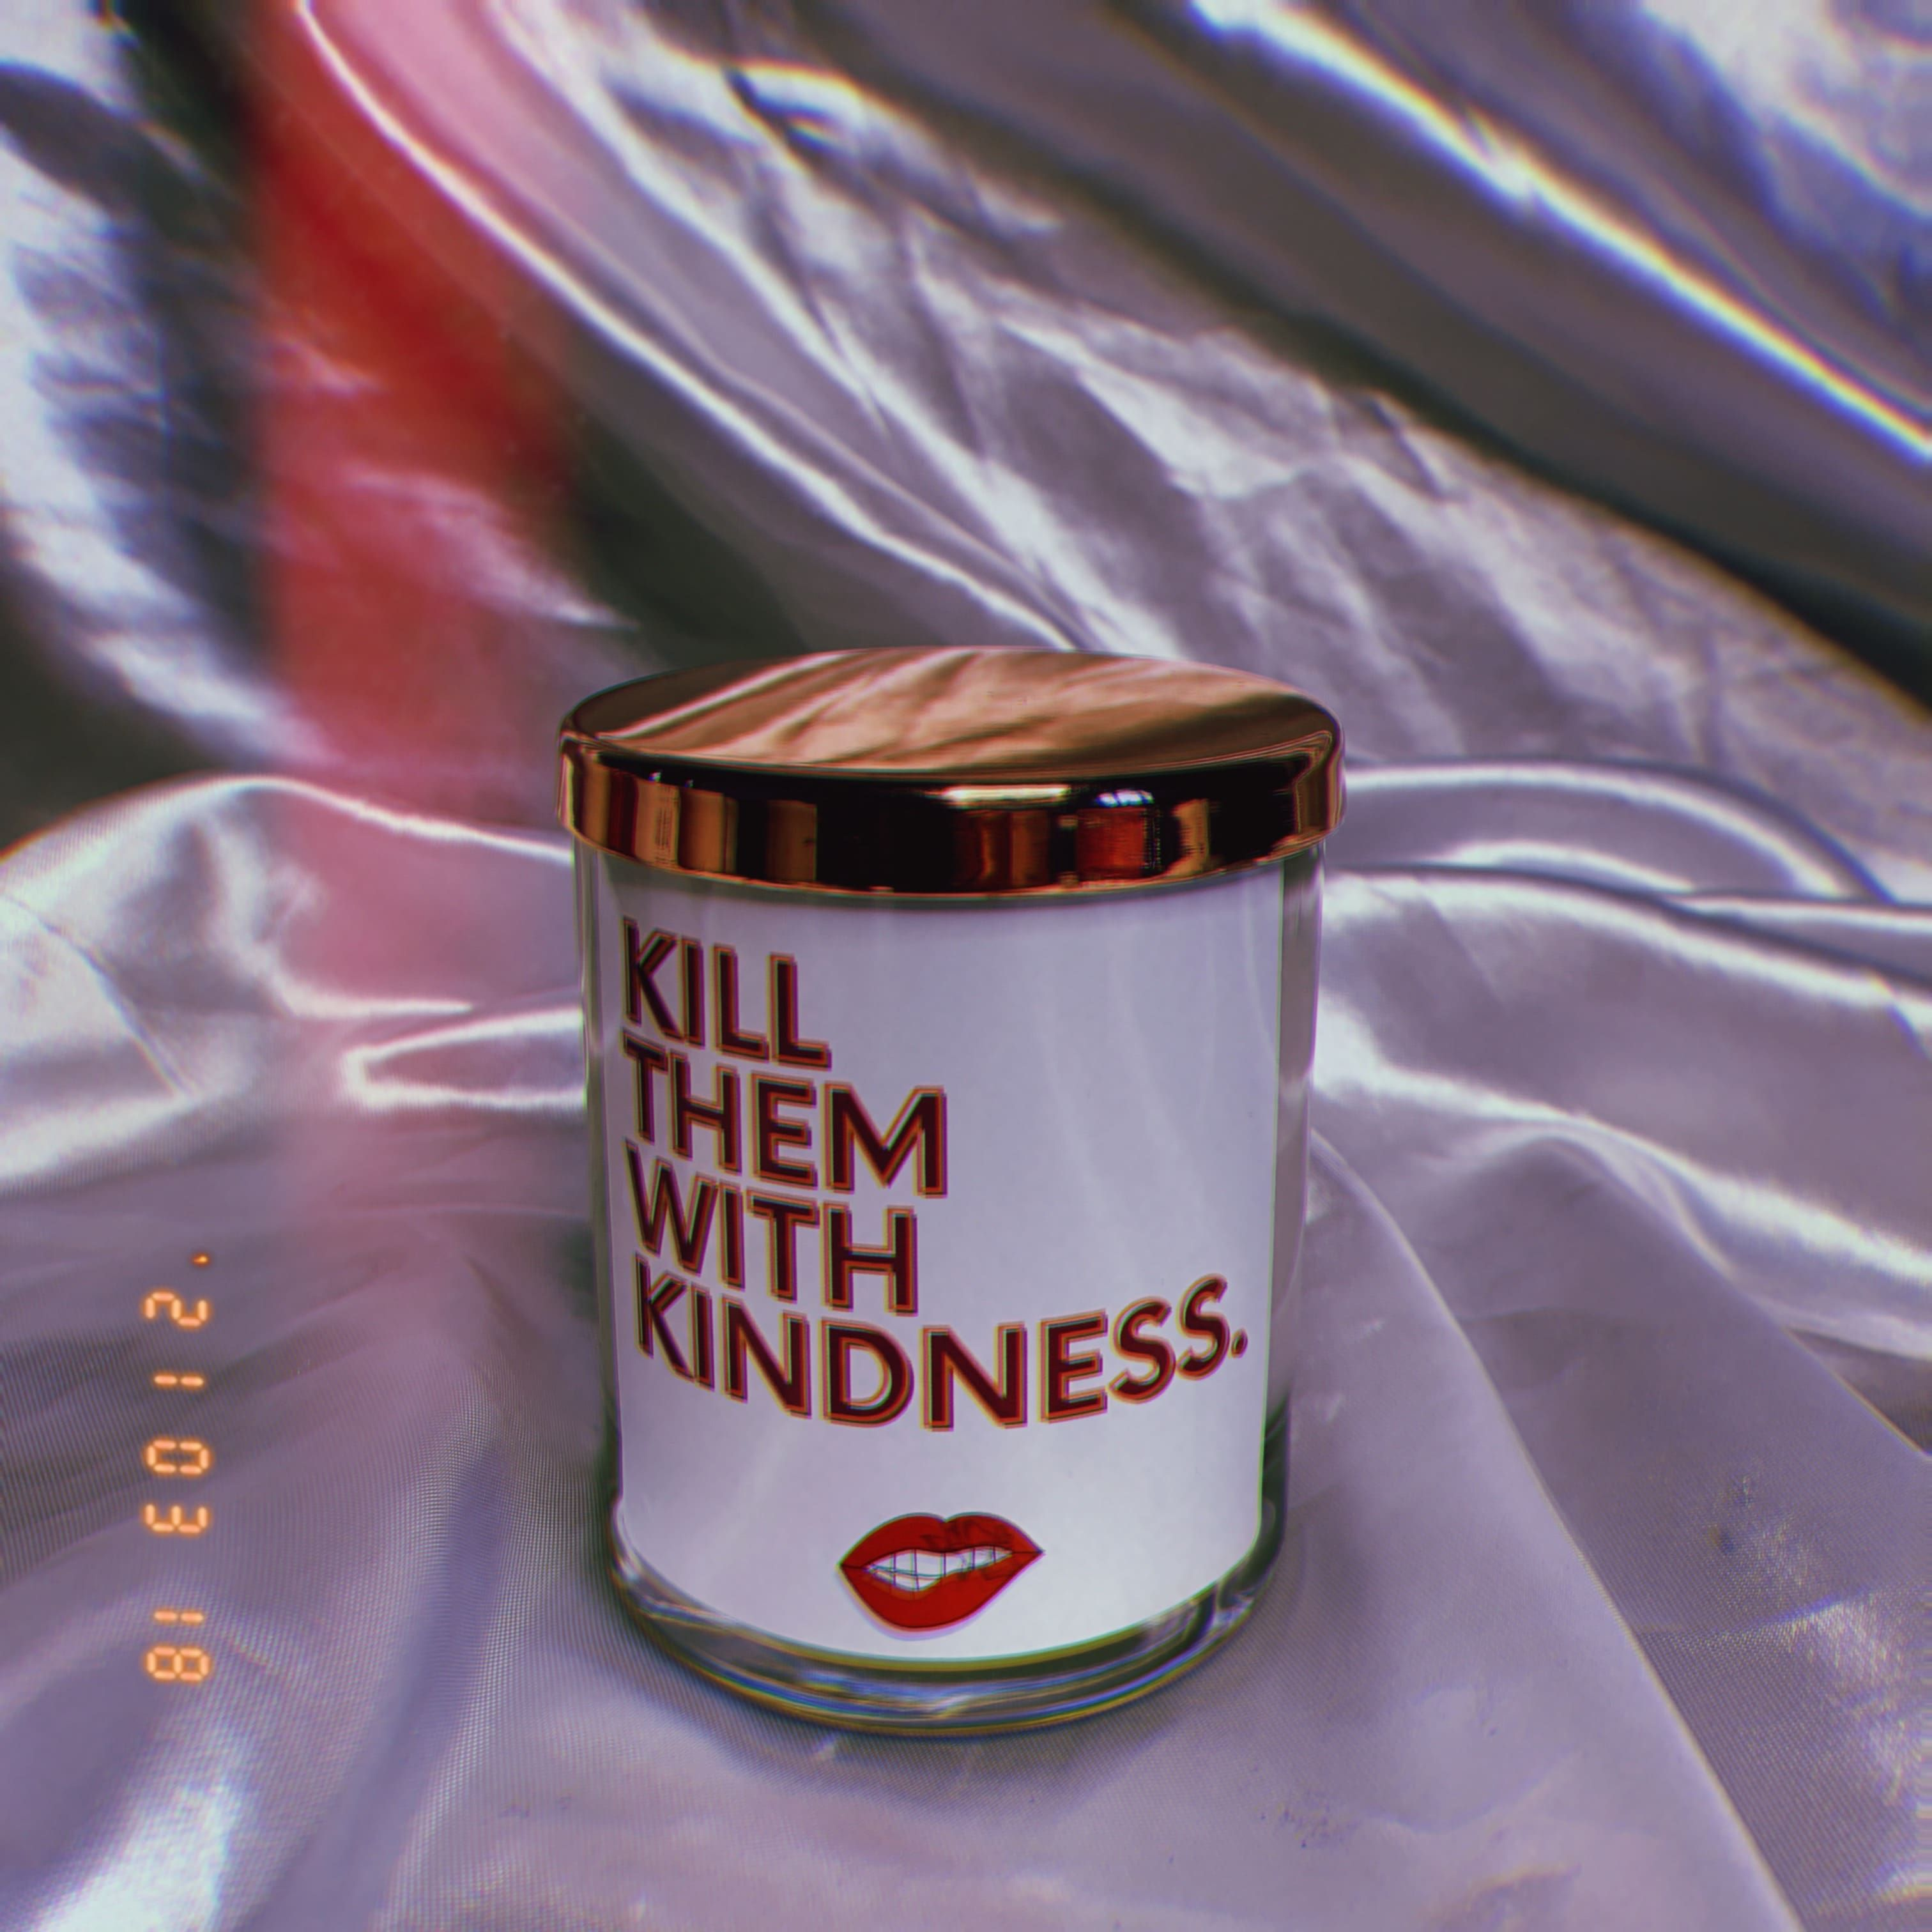 Kill Them With Kindness Scented Candle - 200g